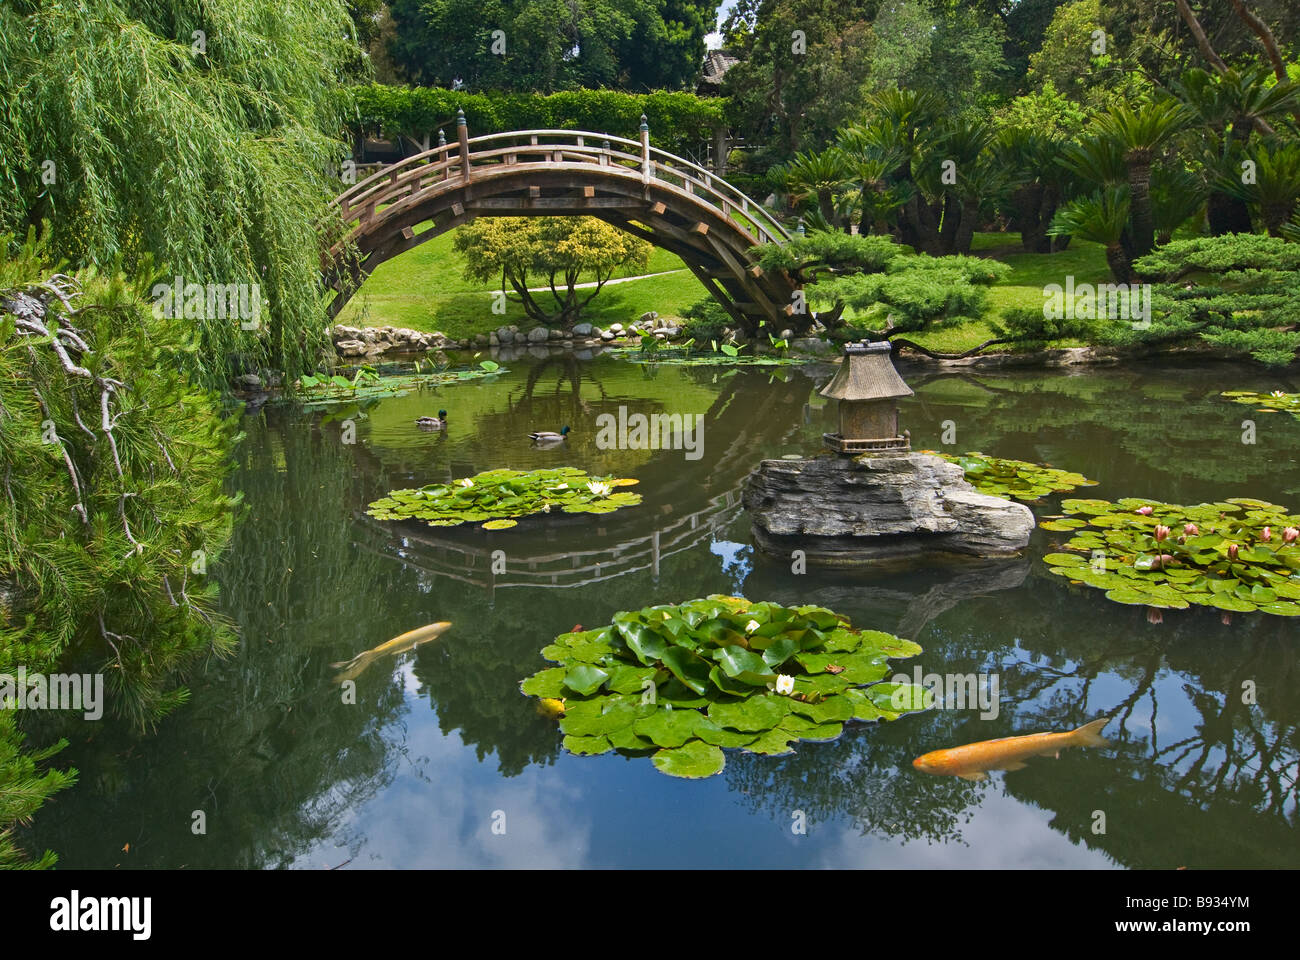 Japanese garden with moon bridge and lotus pond with koi for Koi pond japanese garden